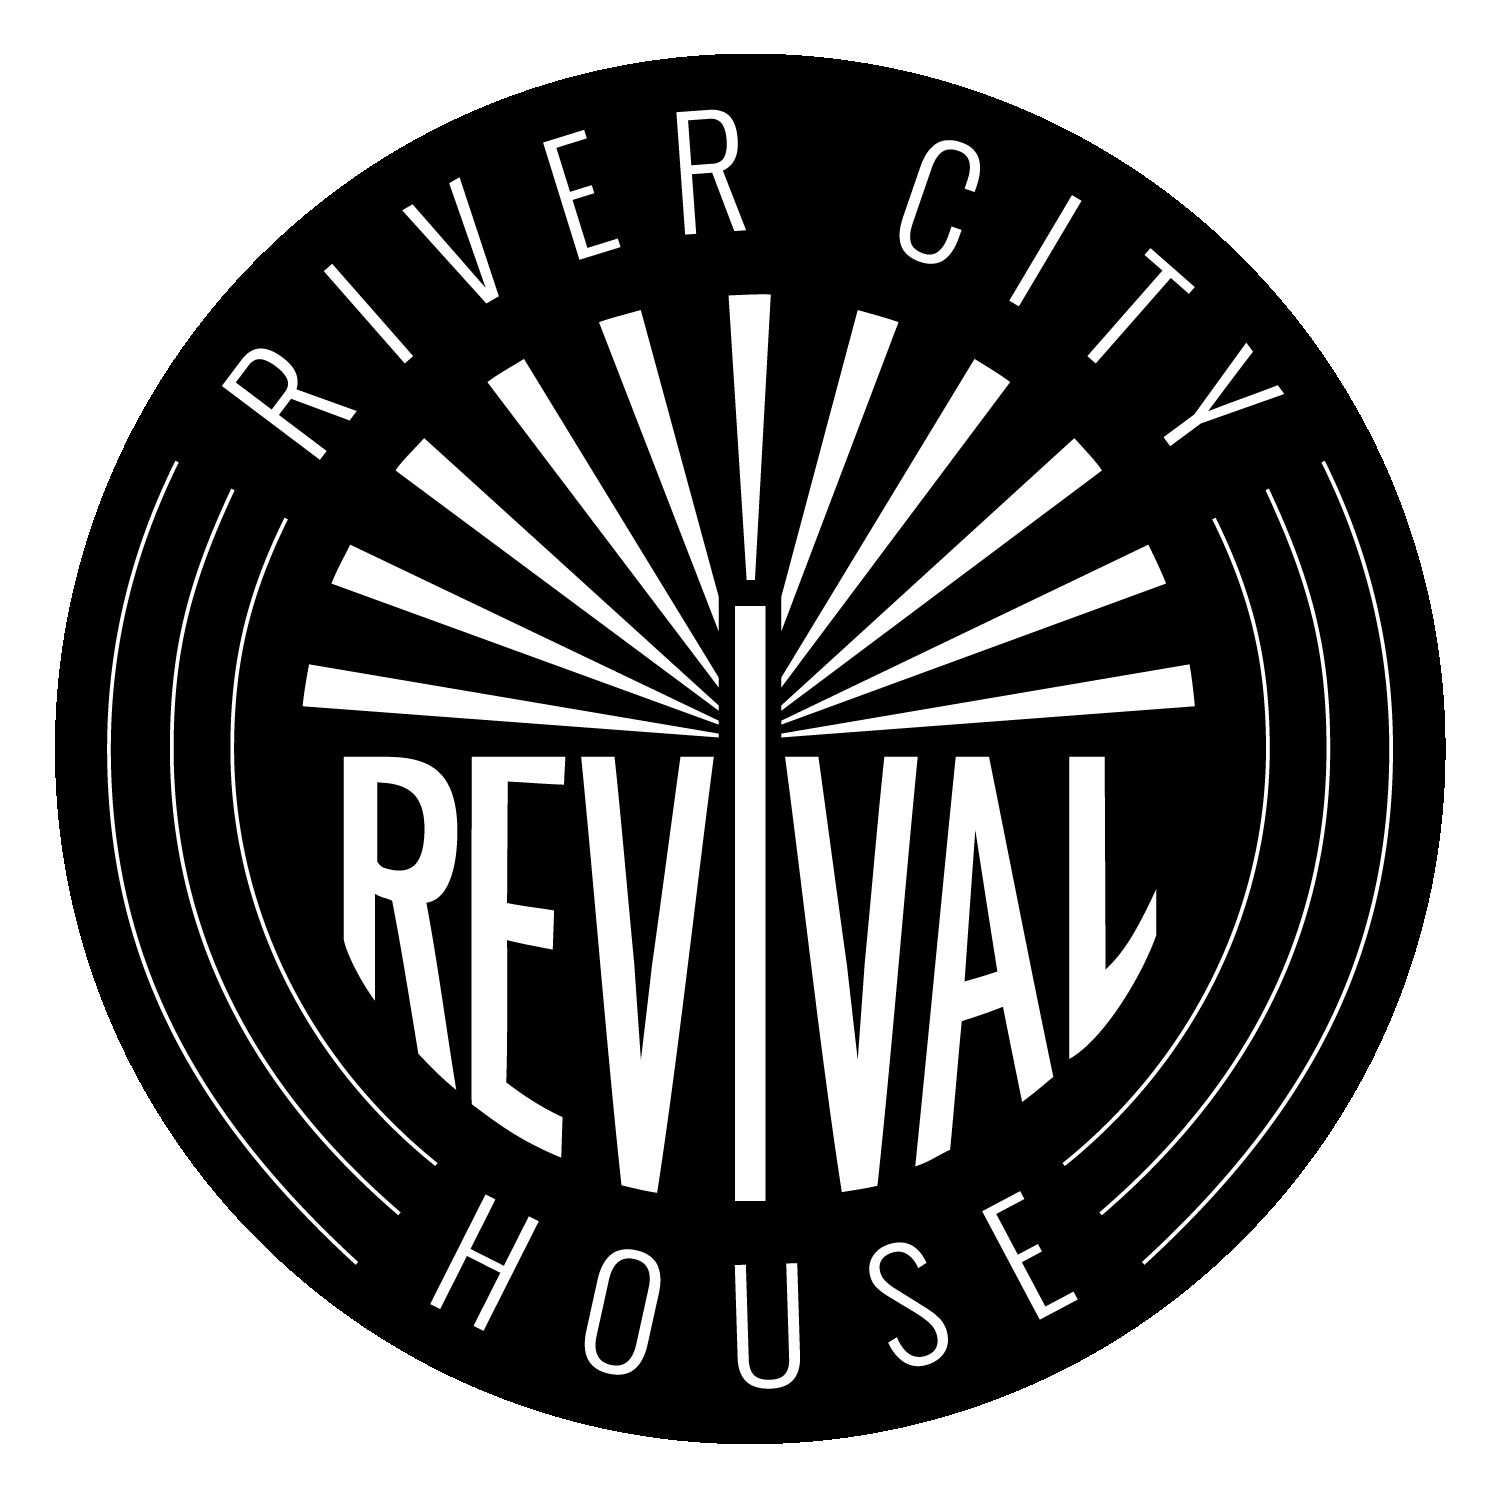 River City Revival House